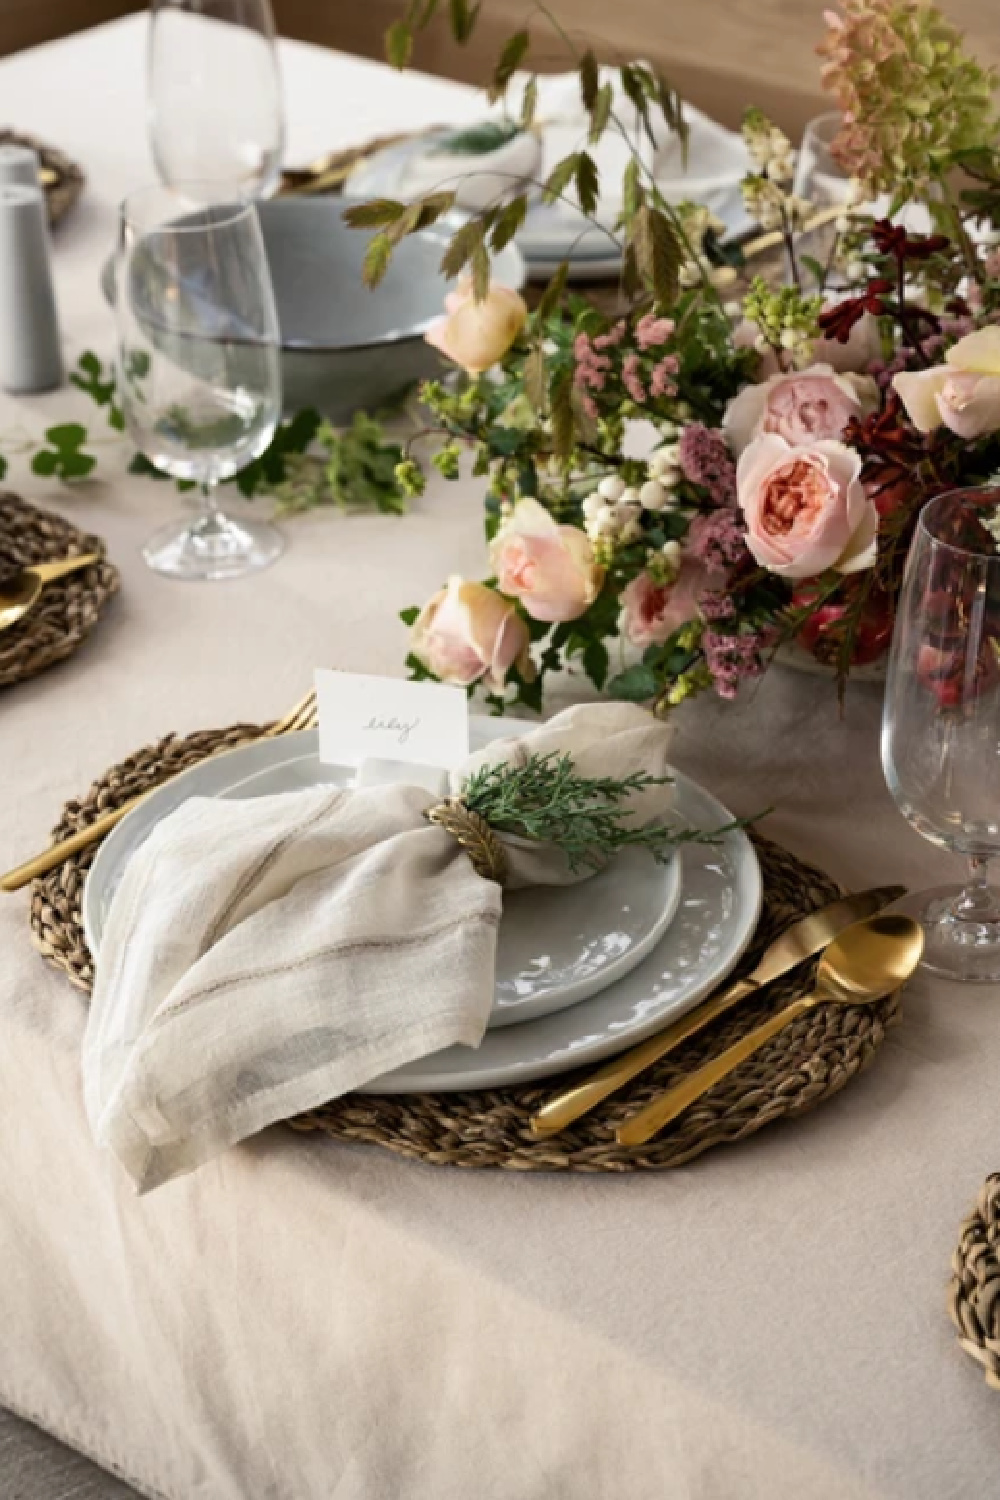 Beautiful natural and romantic holiday place setting and centerpiece - McGee & Co. #holidaytable #christmastable